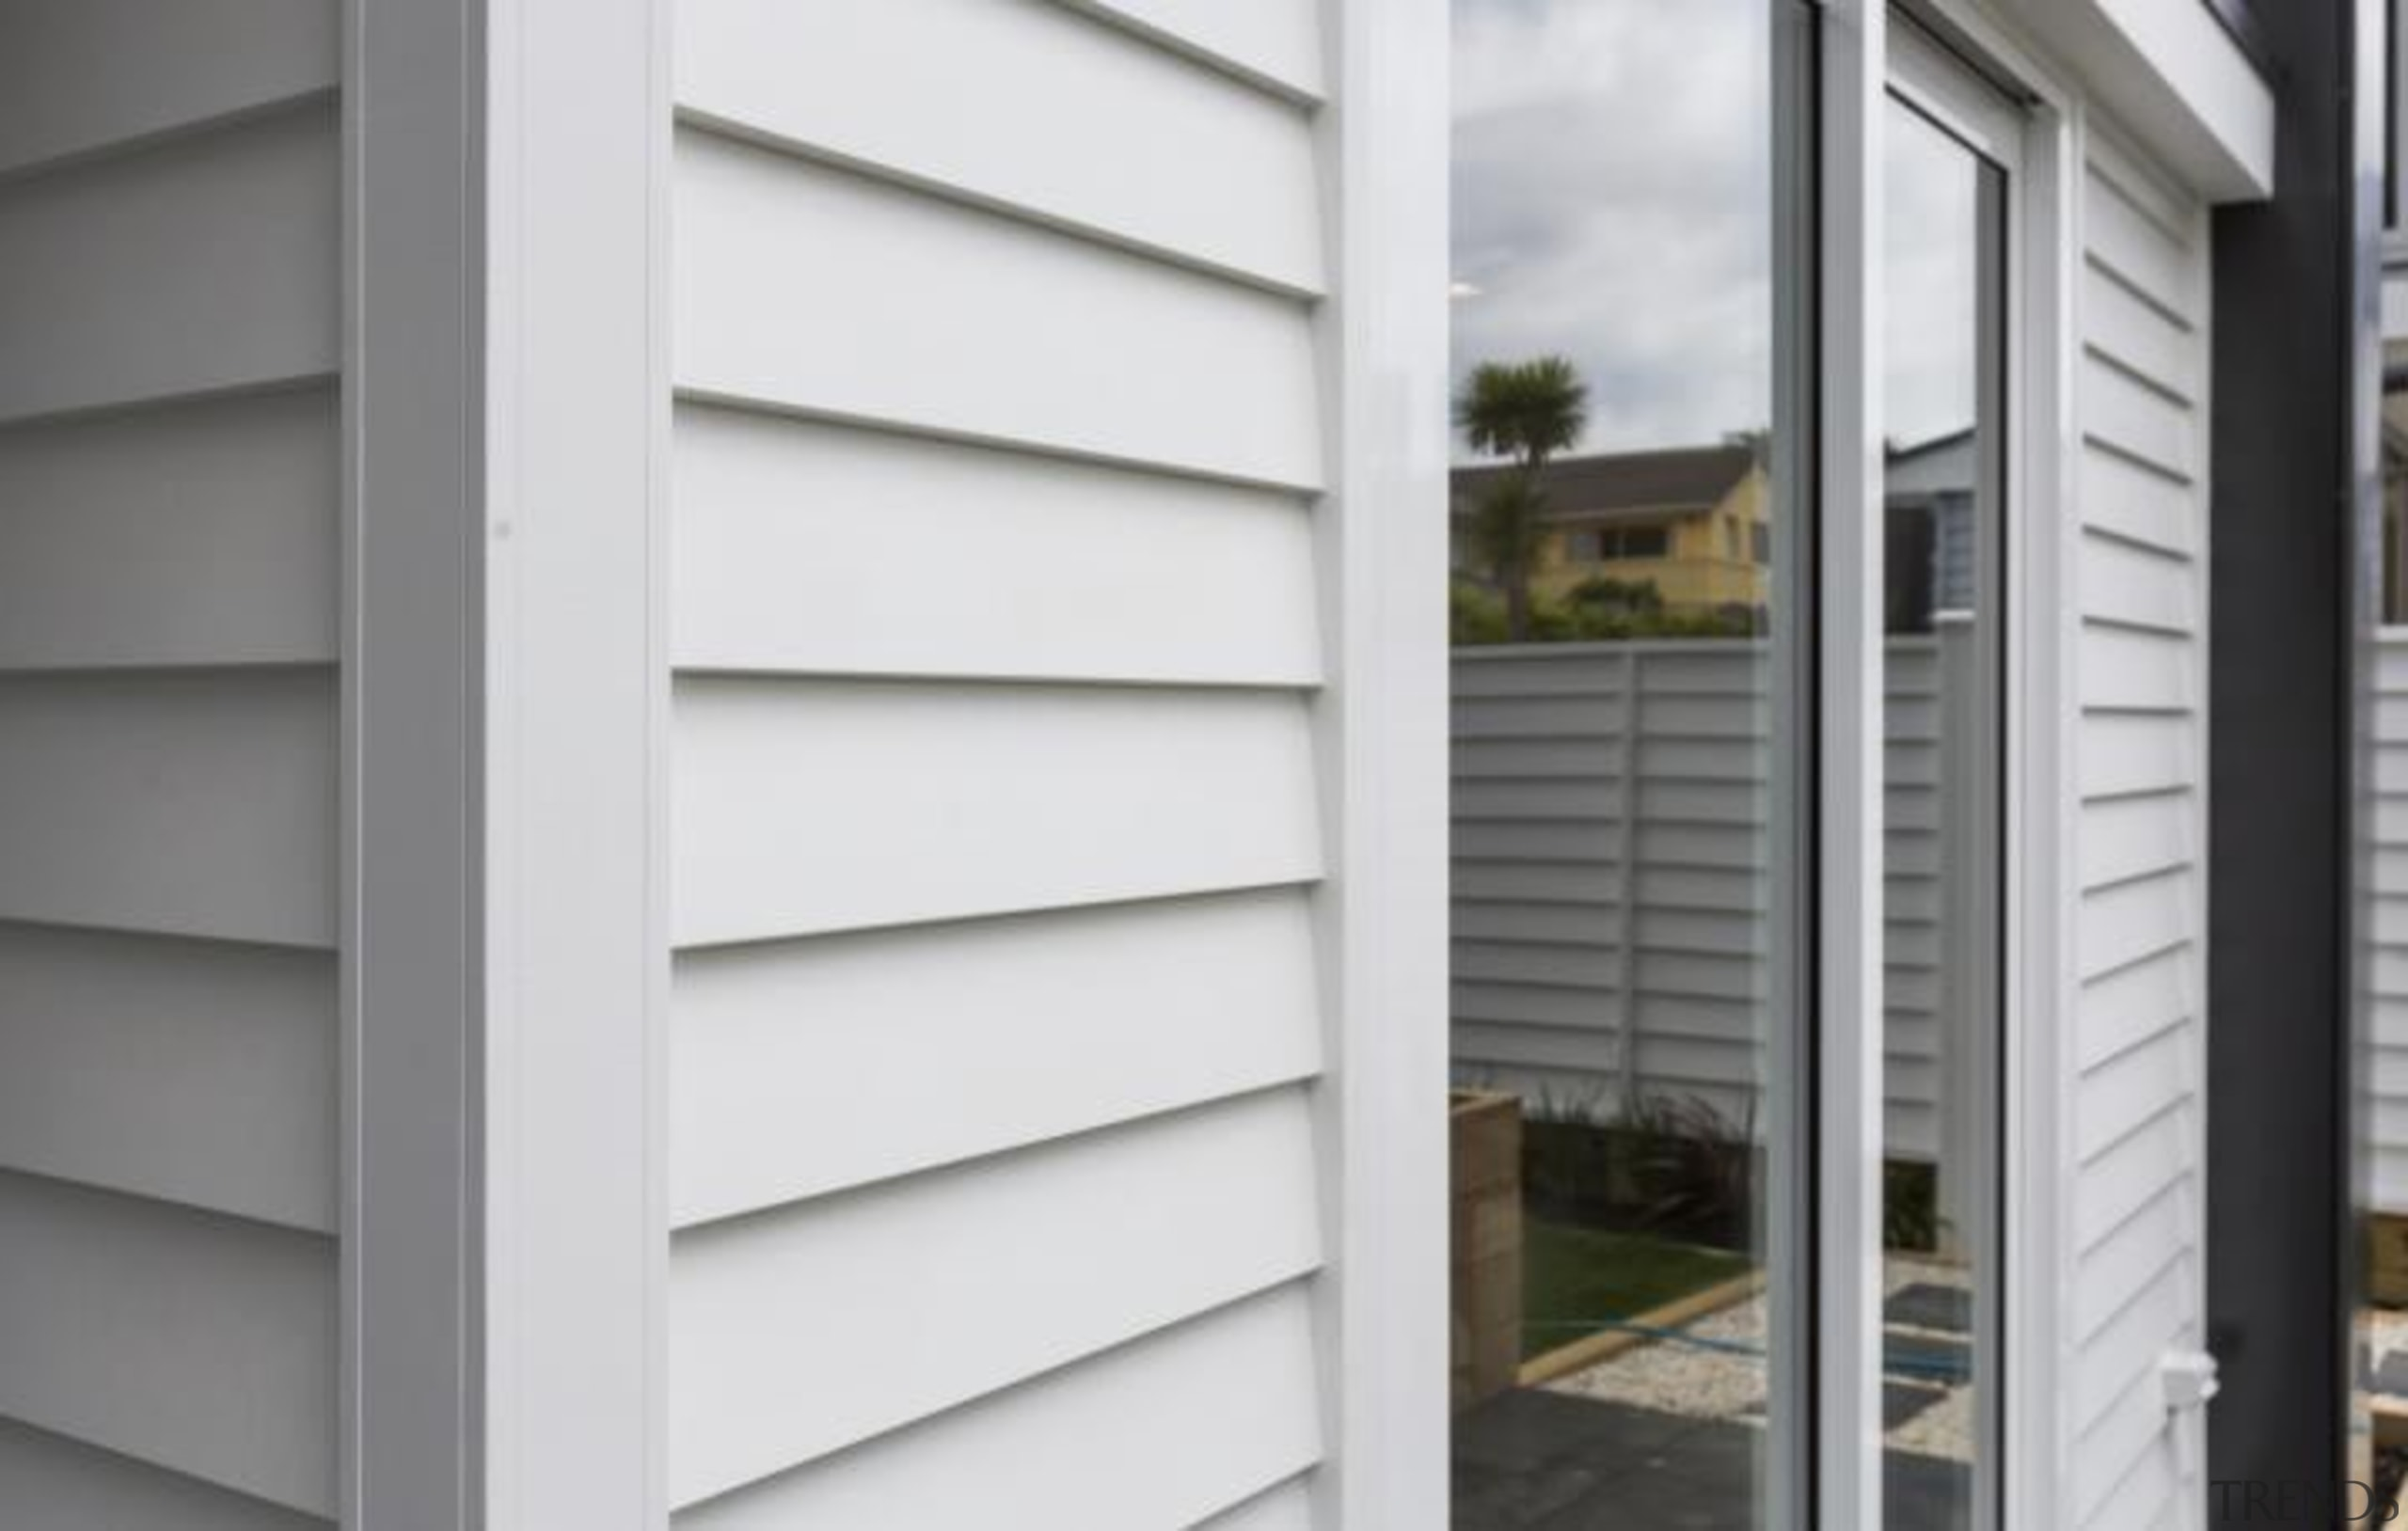 Simpler. Faster. Proven Weathertight. - A-lign Concealed Fix facade, home, real estate, sash window, siding, window, window covering, white, gray